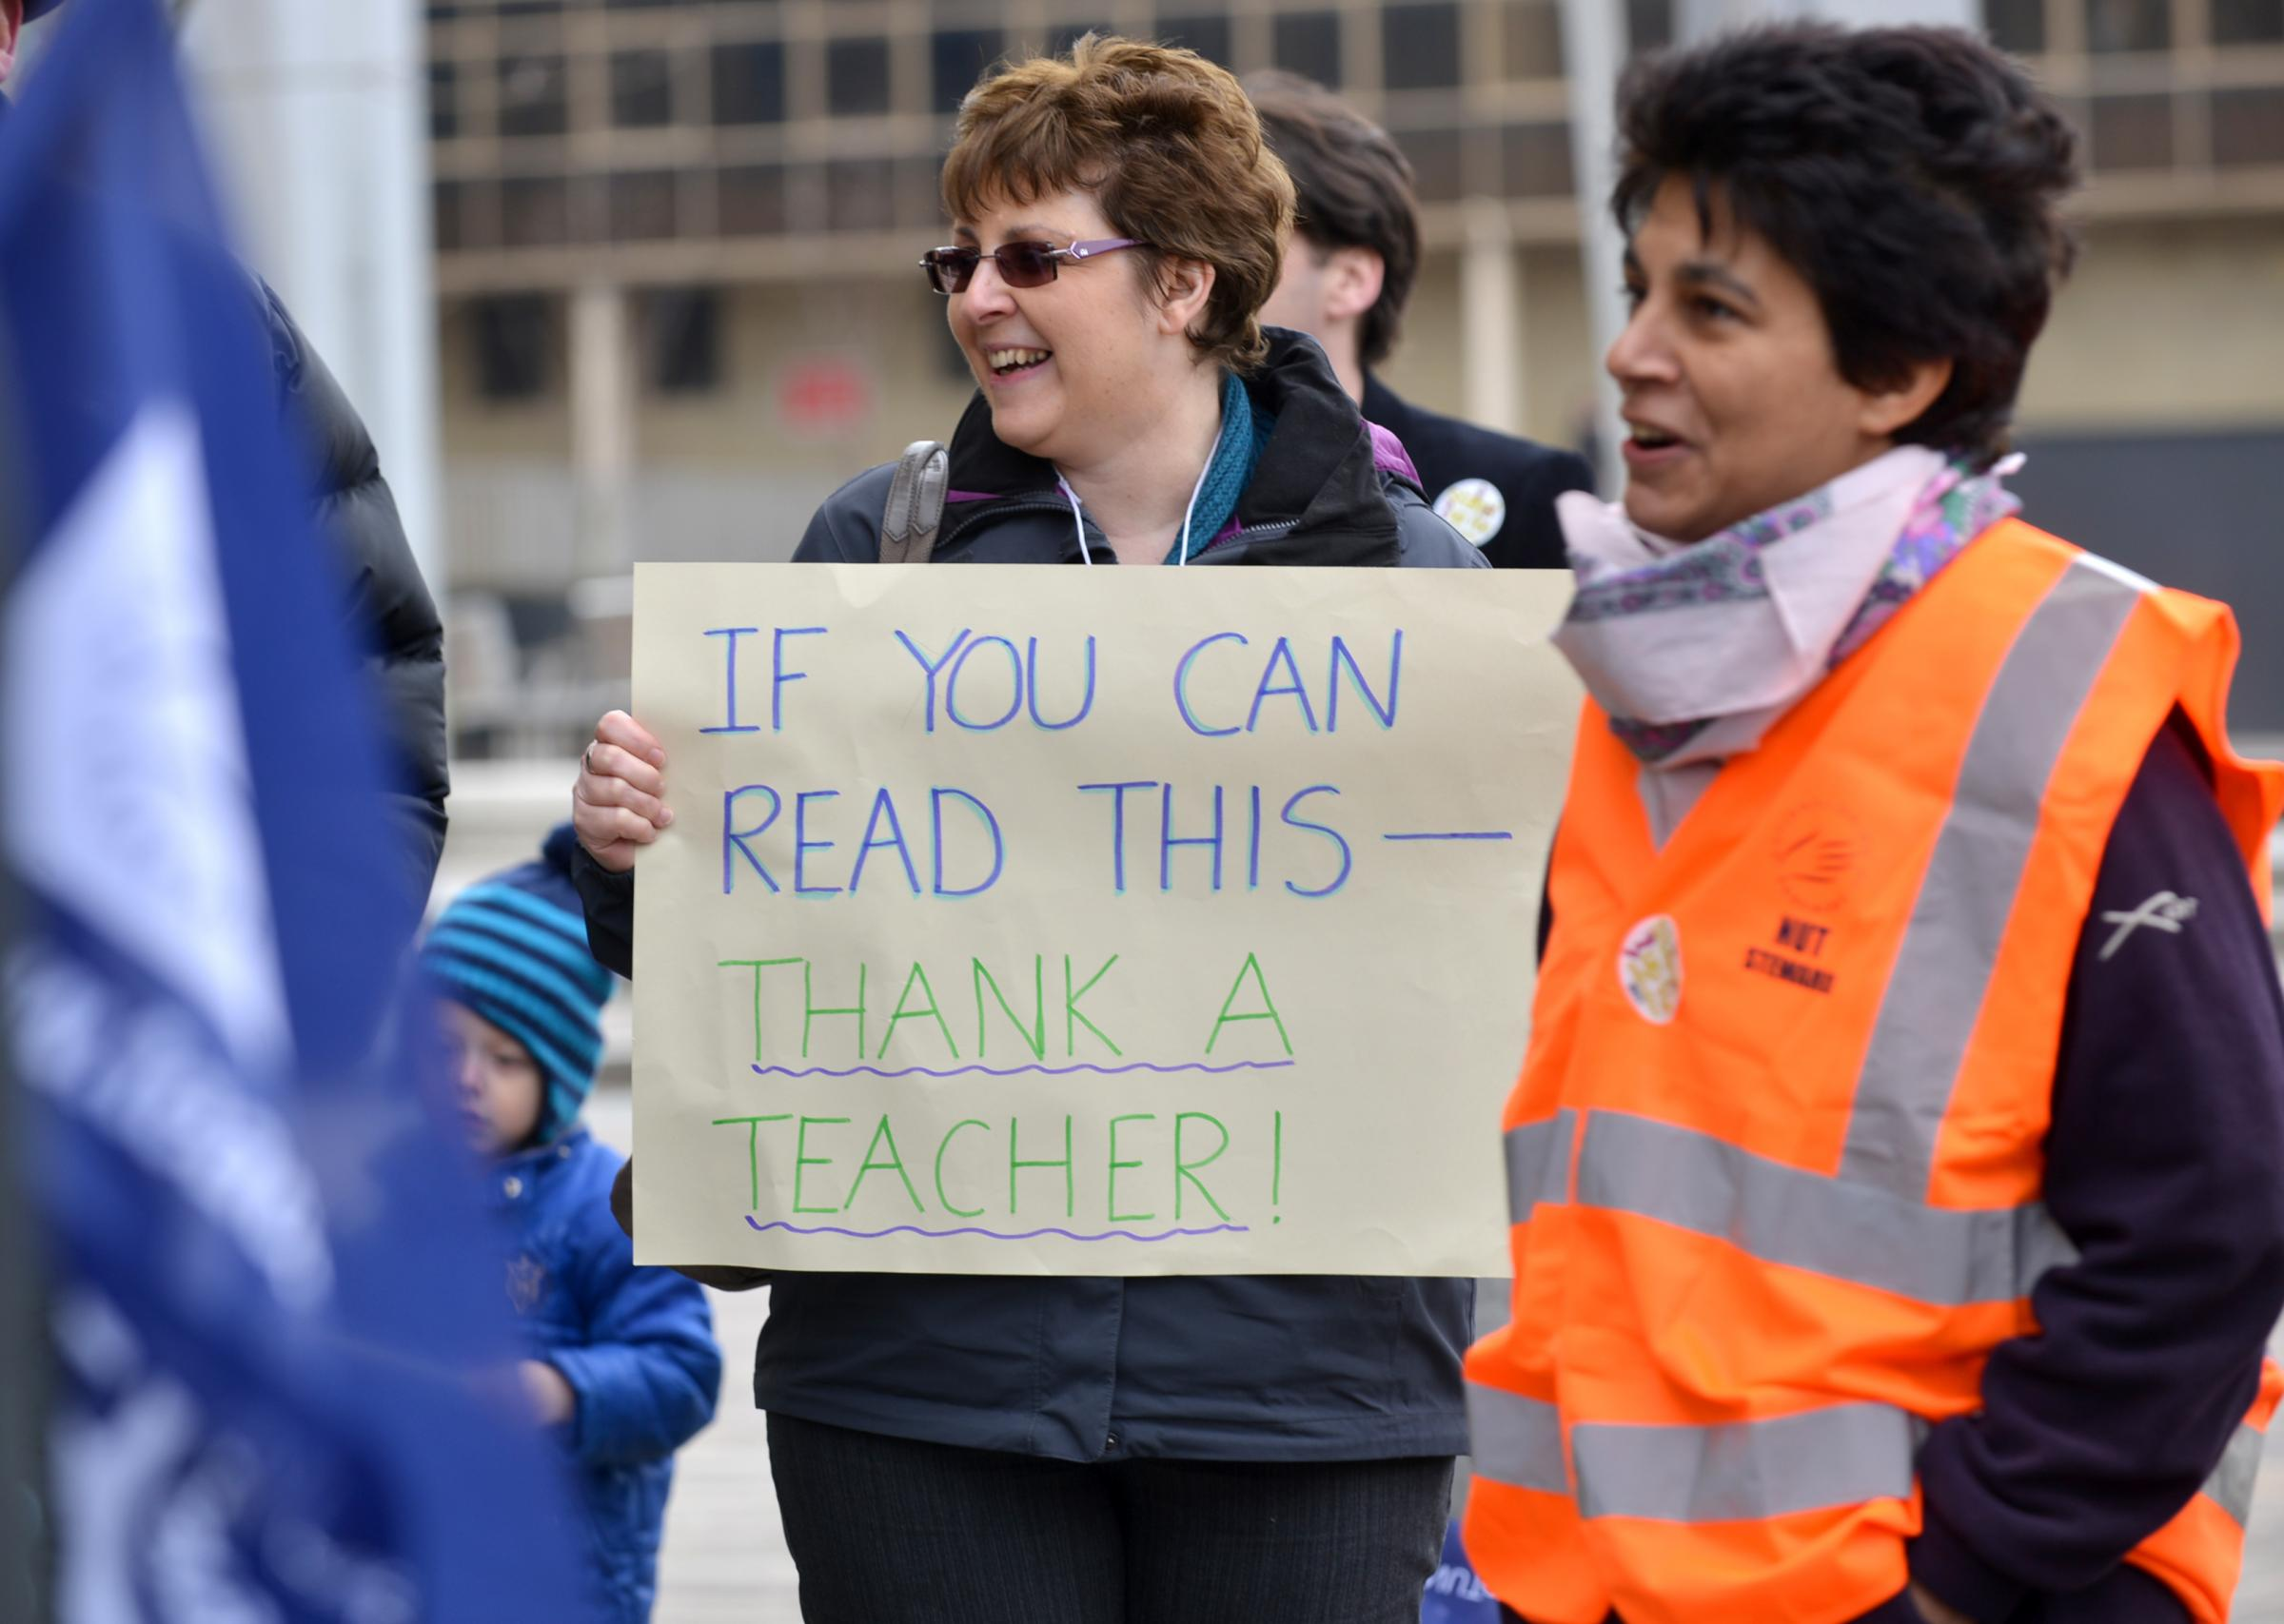 VIDEO: More than 100 Bradford schools hit by teachers' strike - see list of schools affected